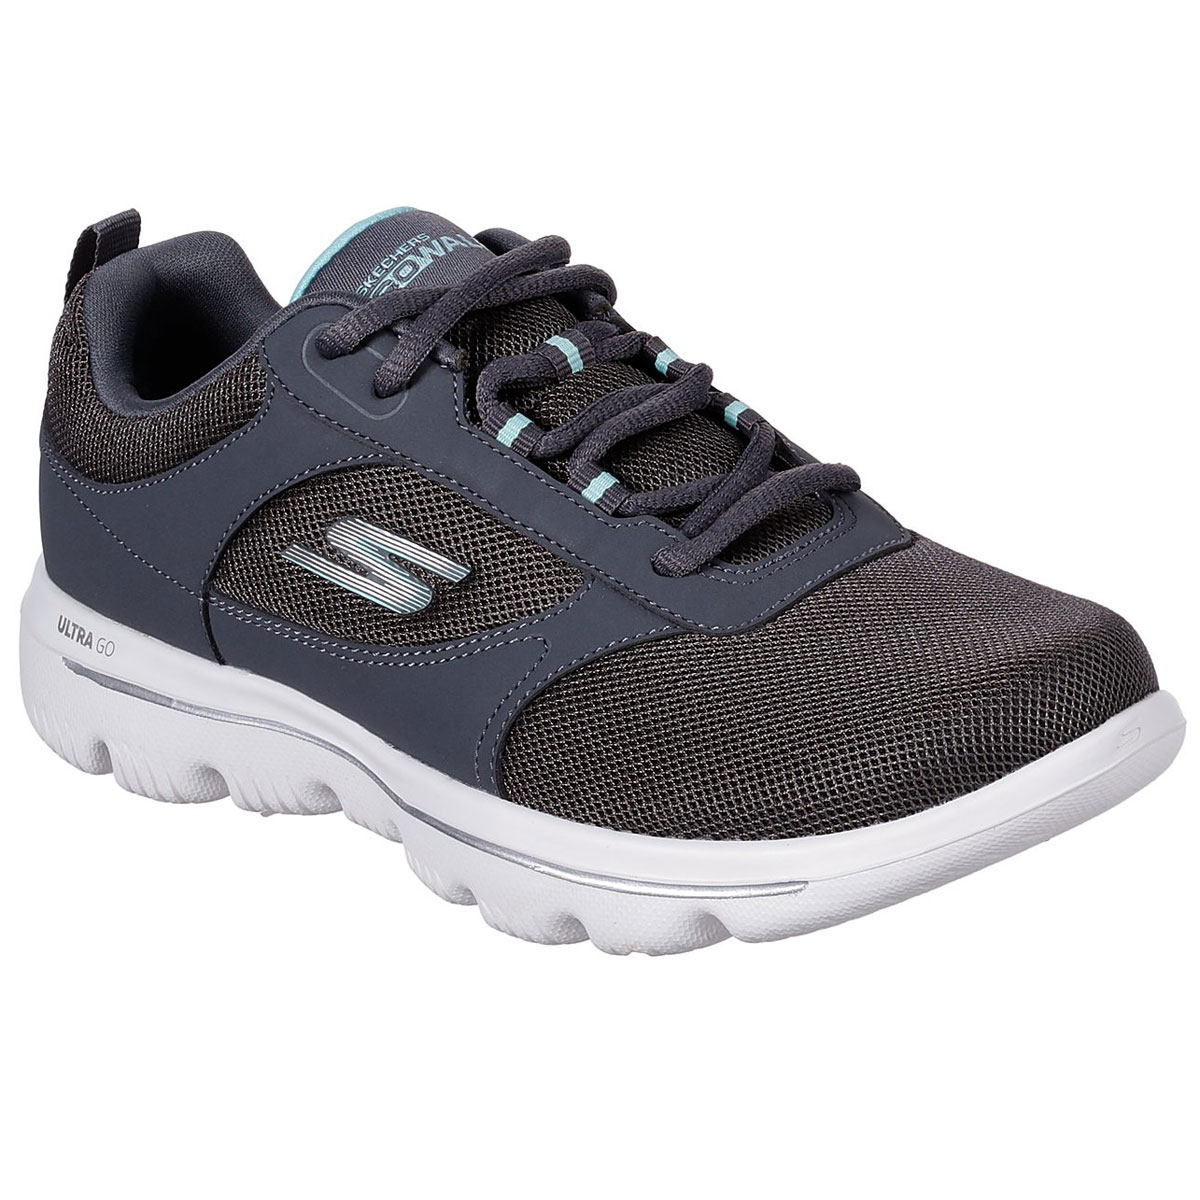 Skechers Women's Go Walk Evolution Ultra Enhance Walking Shoes - Black, 8.5